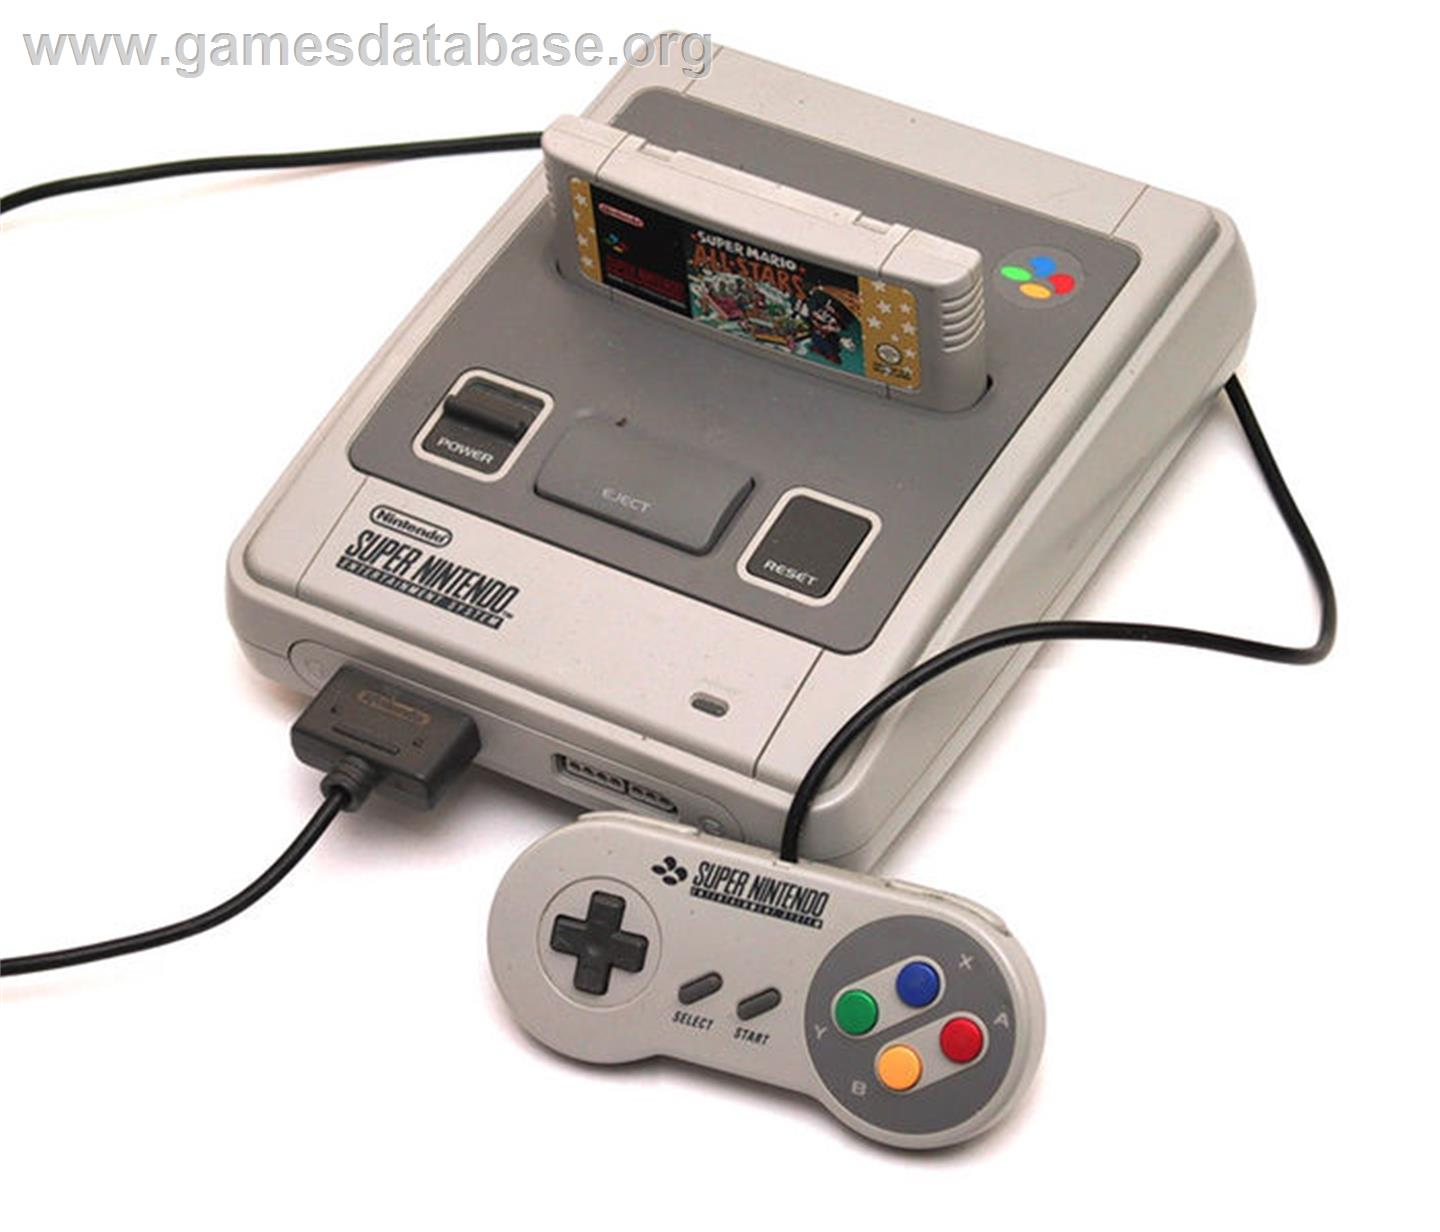 About Nintendo Snes Games Database